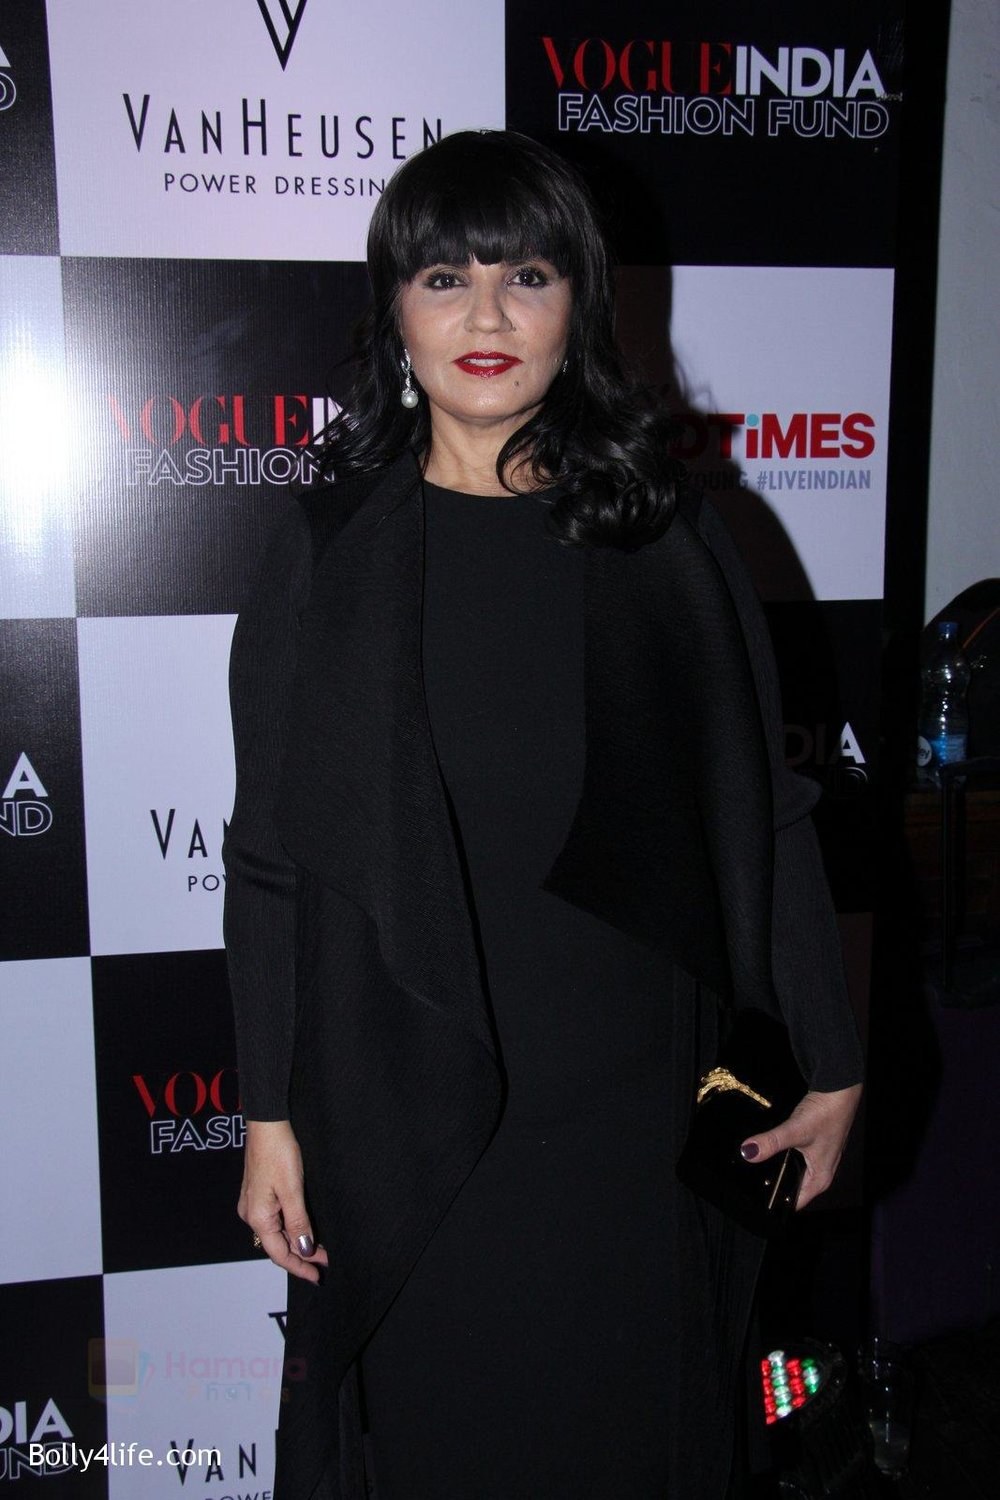 Neeta-Lulla-at-Vogue-India-Fashion-Fund-Event-2.jpg